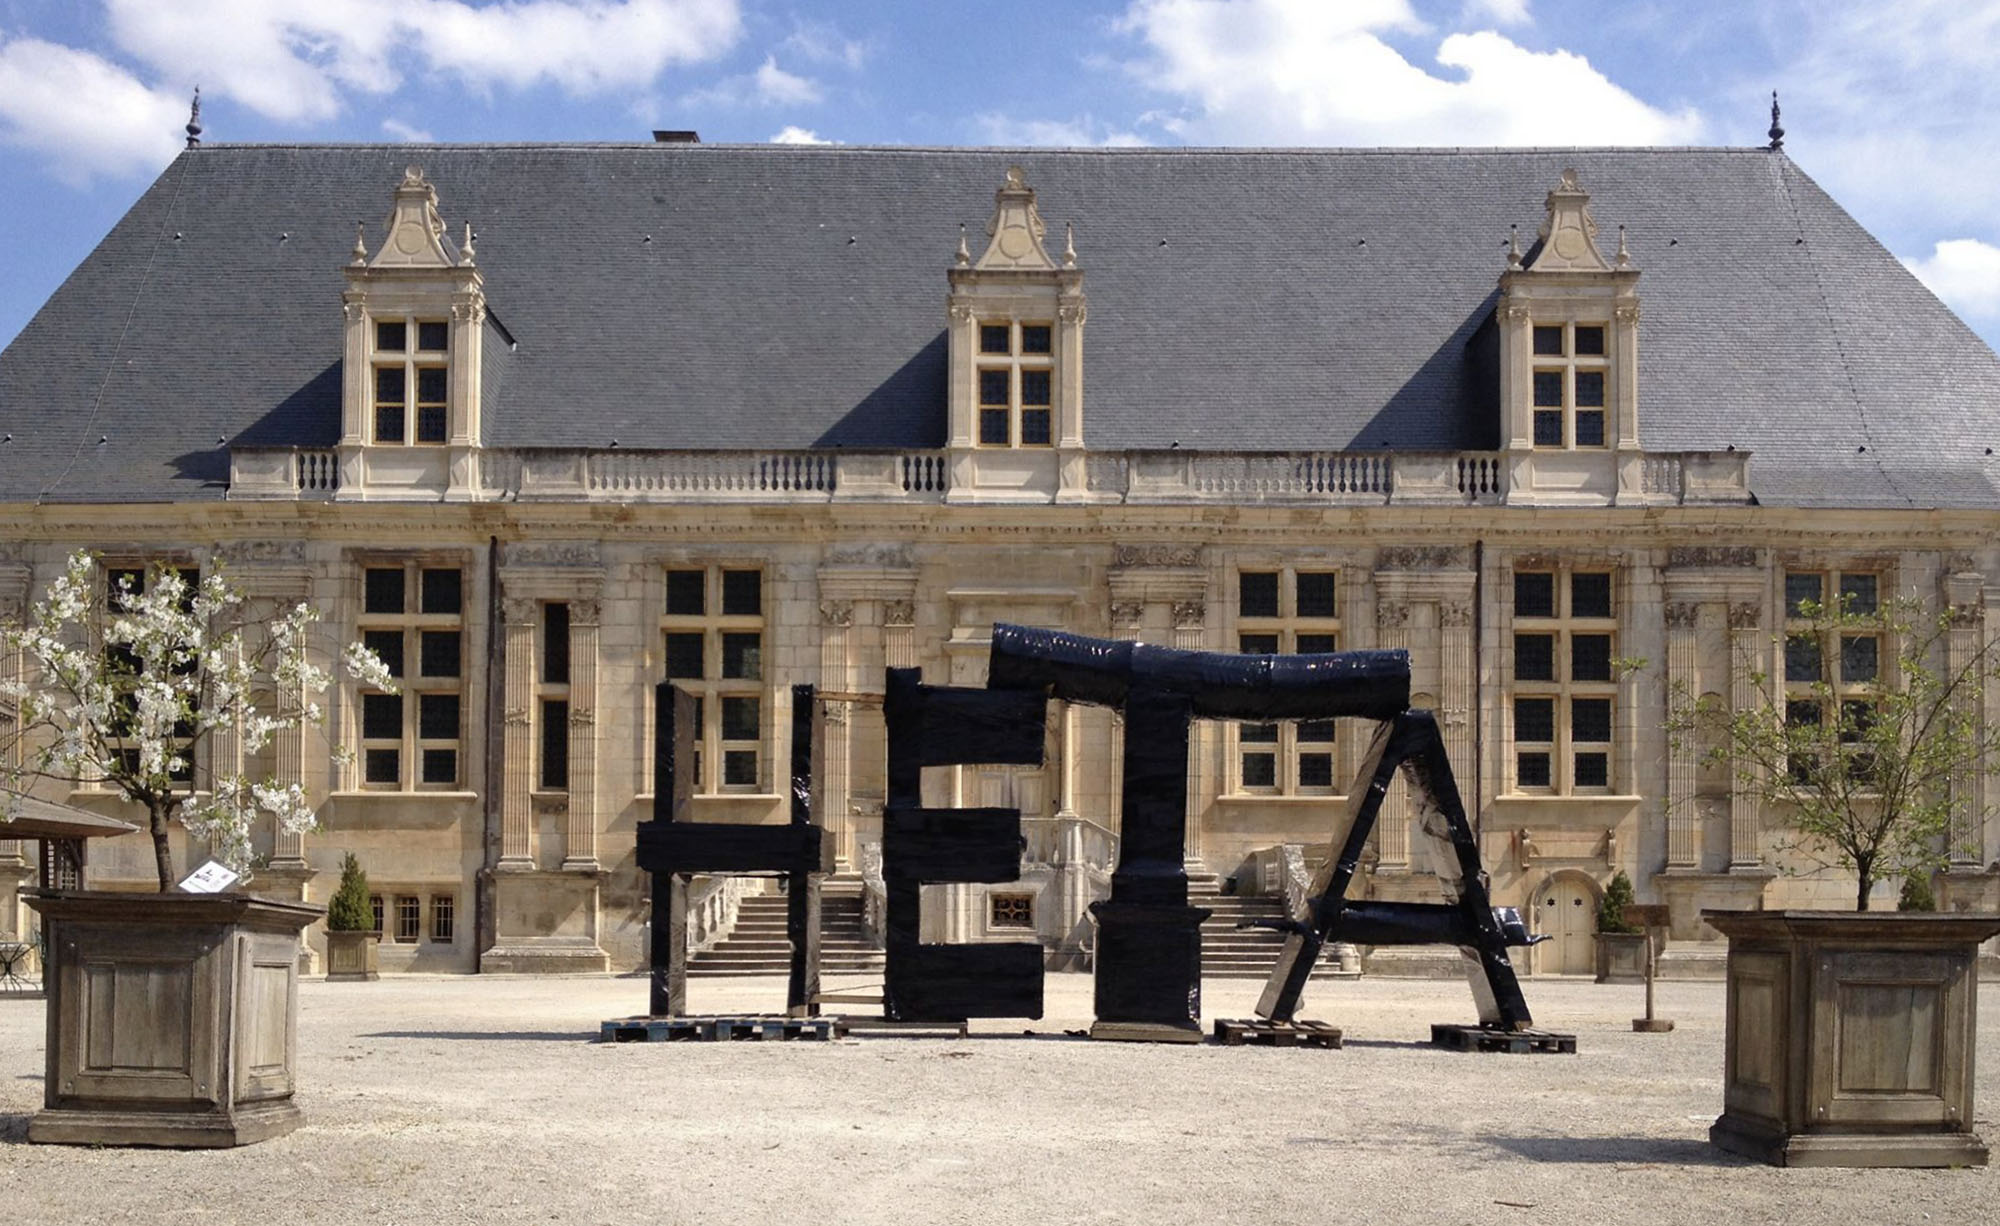 Heta-One-expo-Chateau-de-grand-jardin